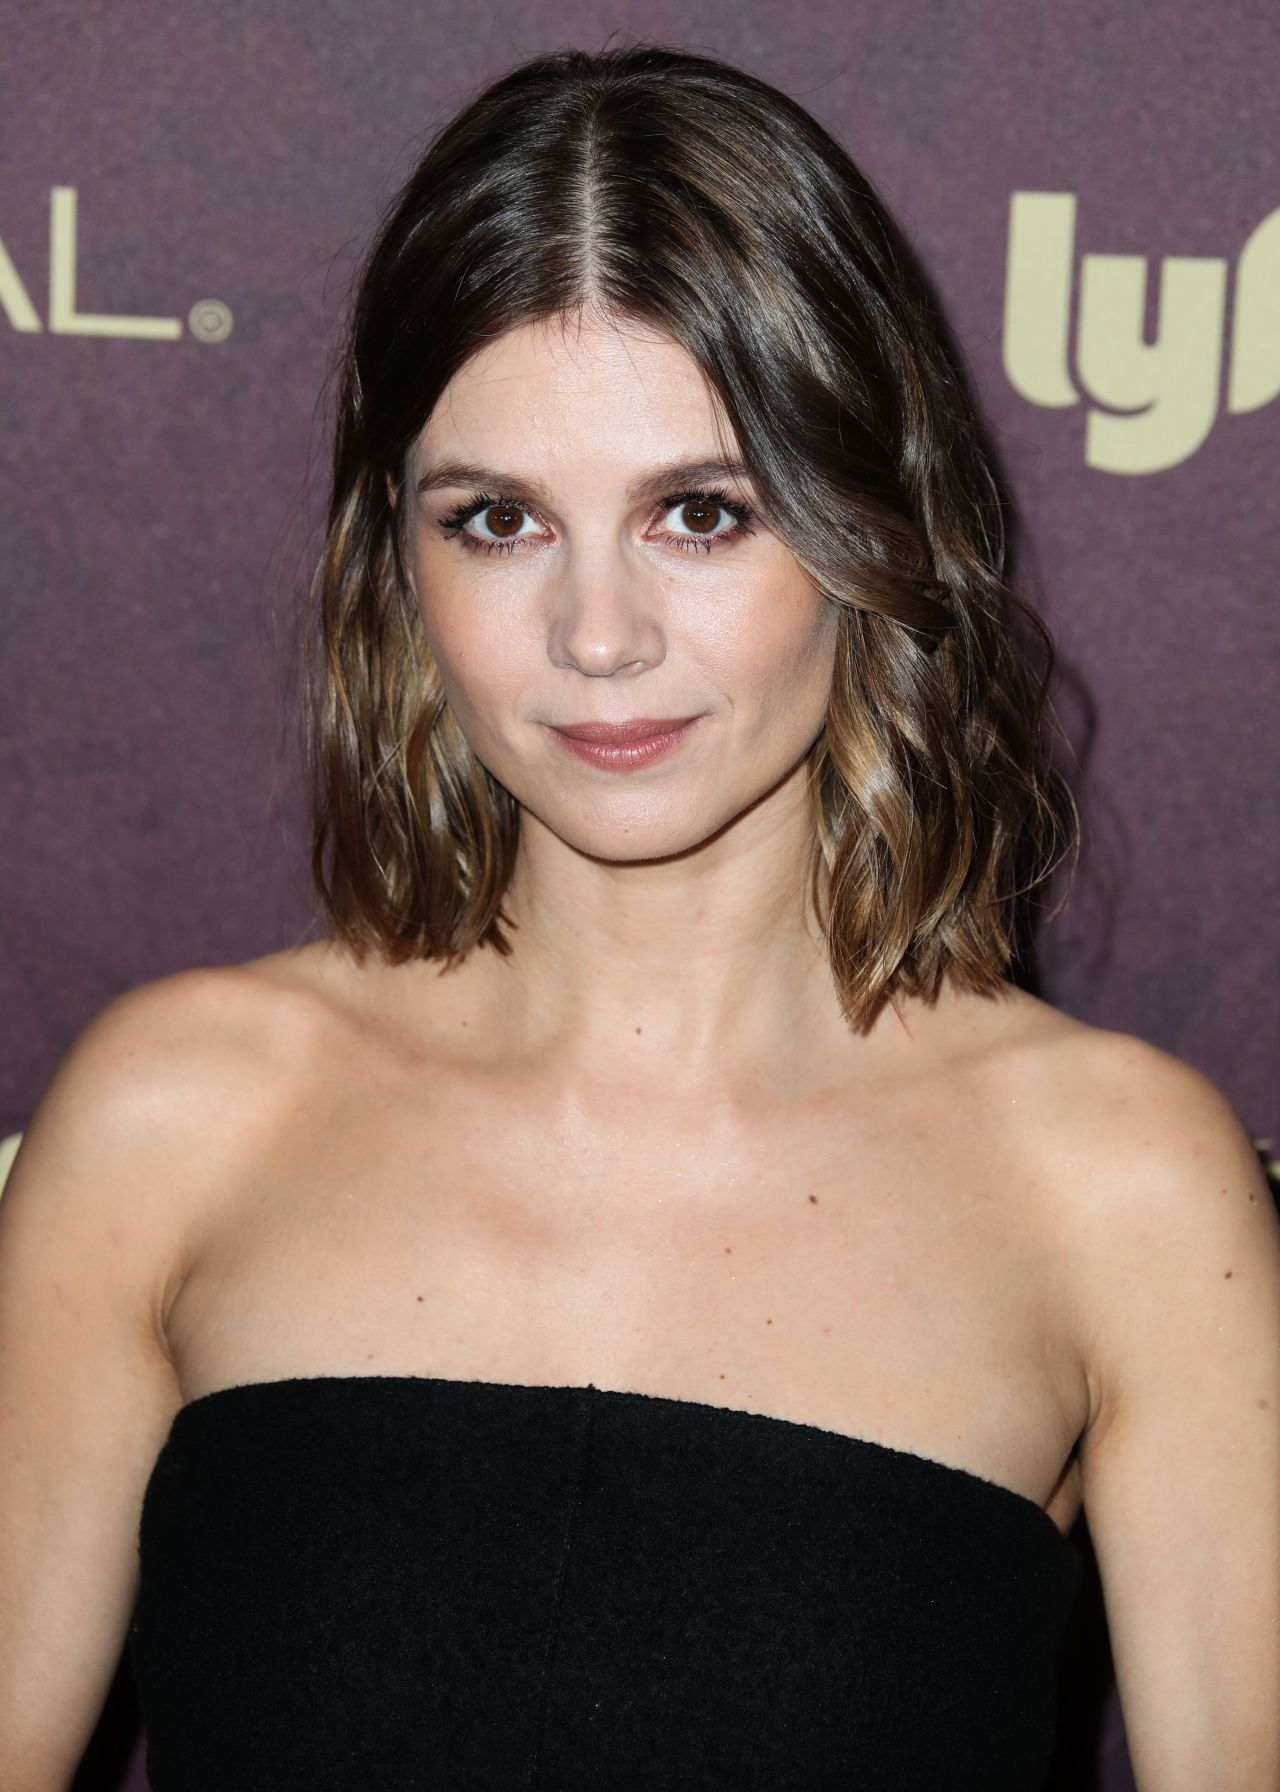 Pin by E on women (With images) | Katja herbers, Entertainment weekly, Women